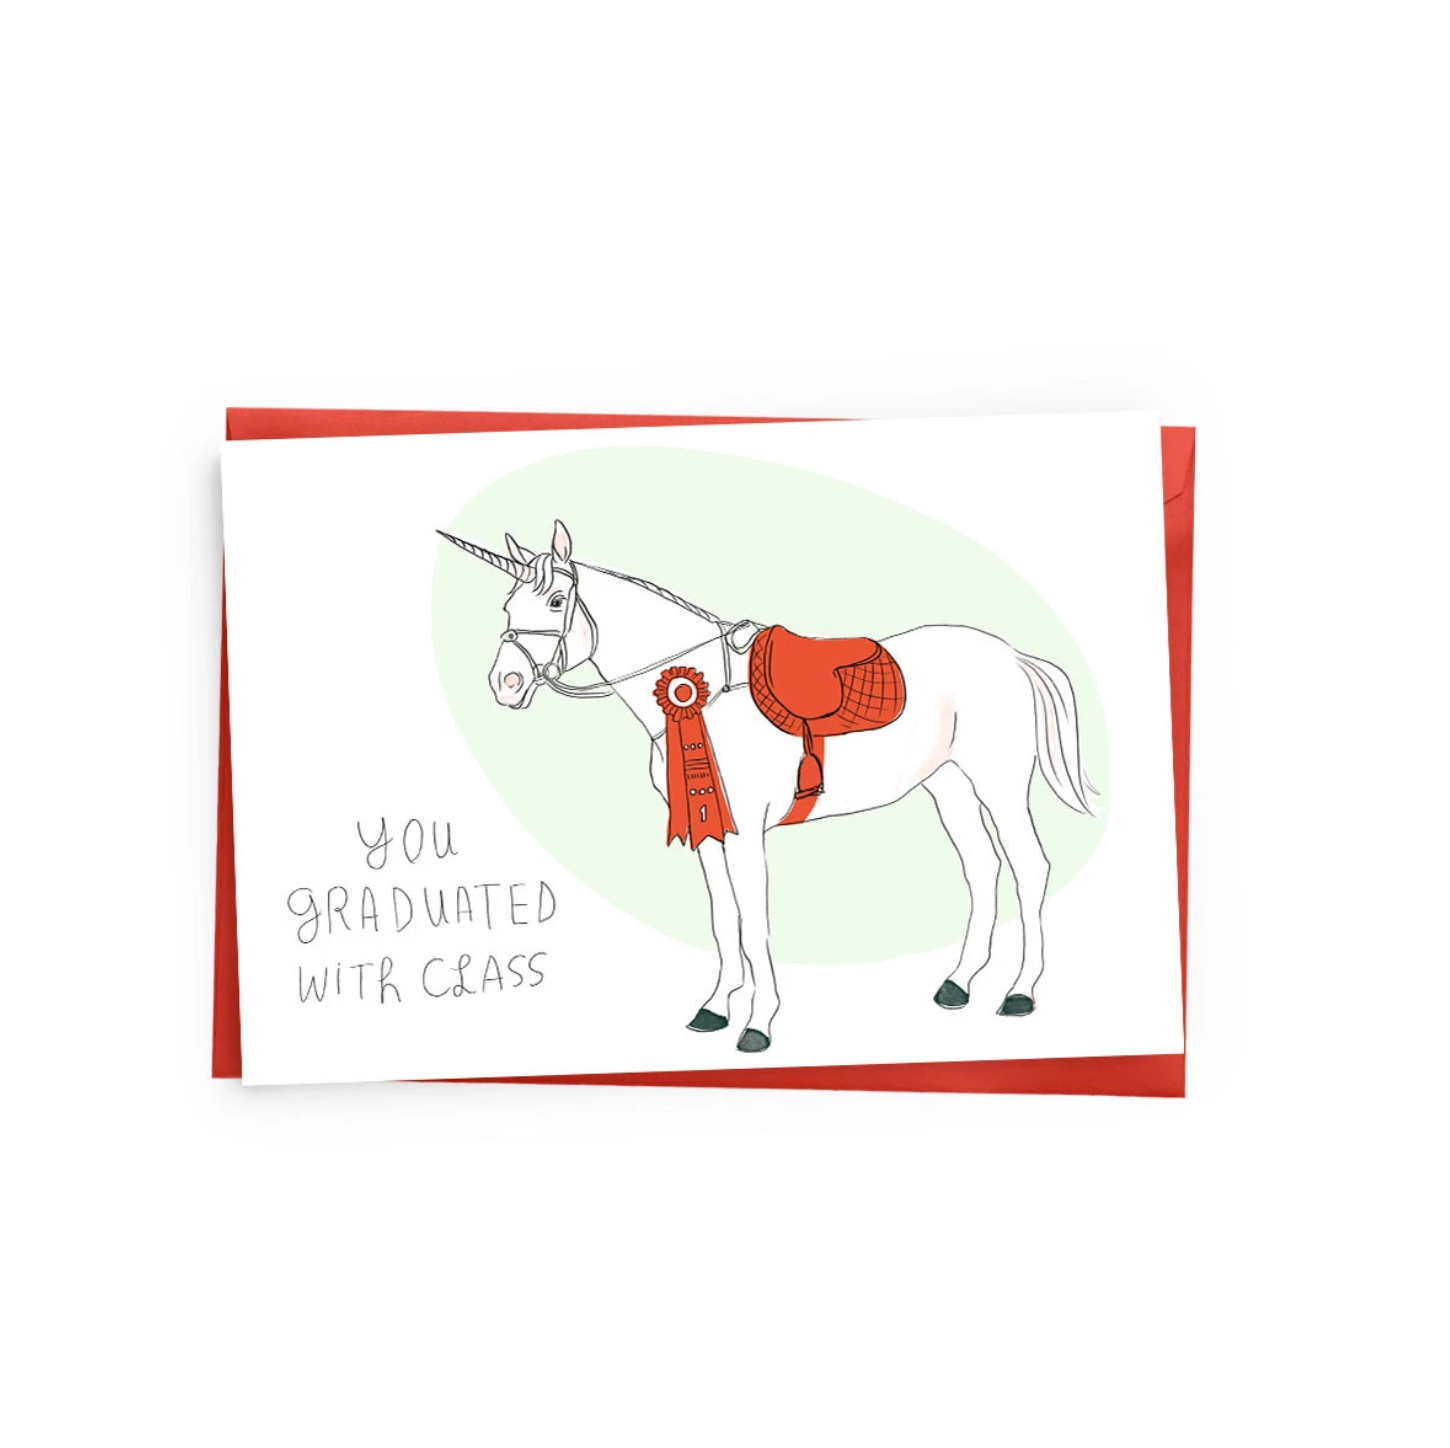 Graduation Unicorn Card, Baltic Club